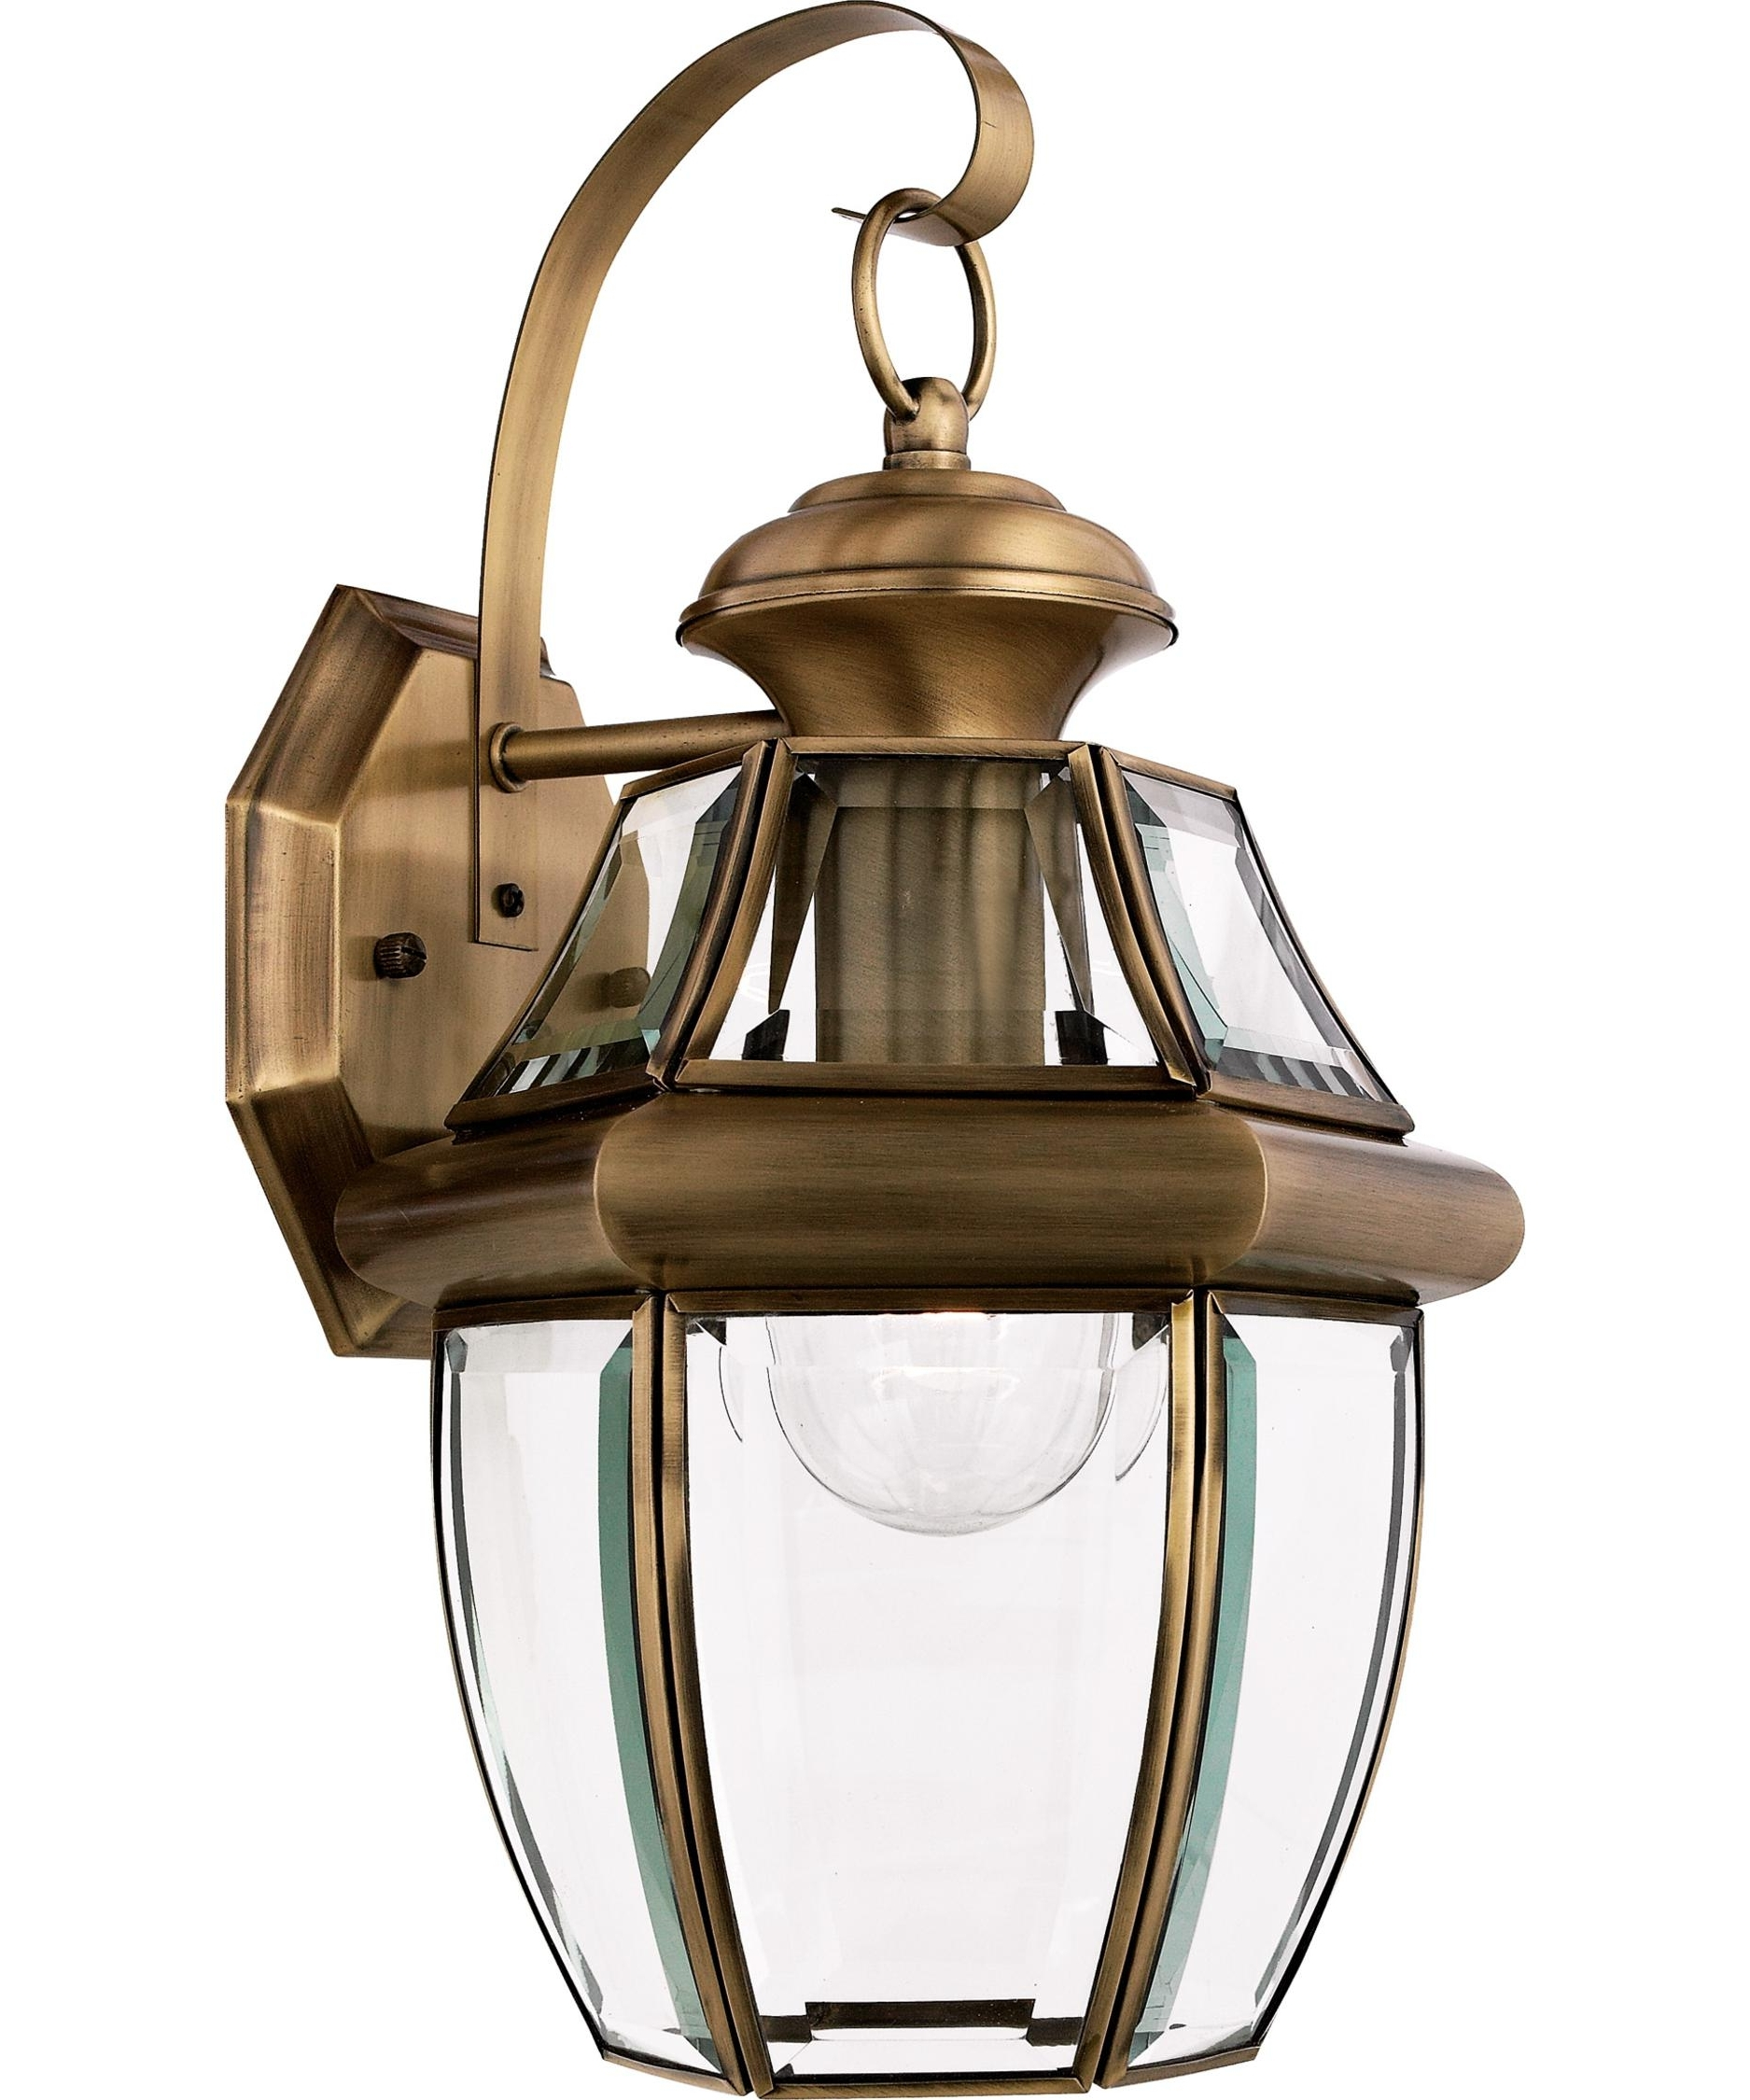 Quoizel Outdoor Wall Lighting Within Latest Quoizel Ny8316 Newbury 9 Inch Wide 1 Light Outdoor Wall Light (View 9 of 20)